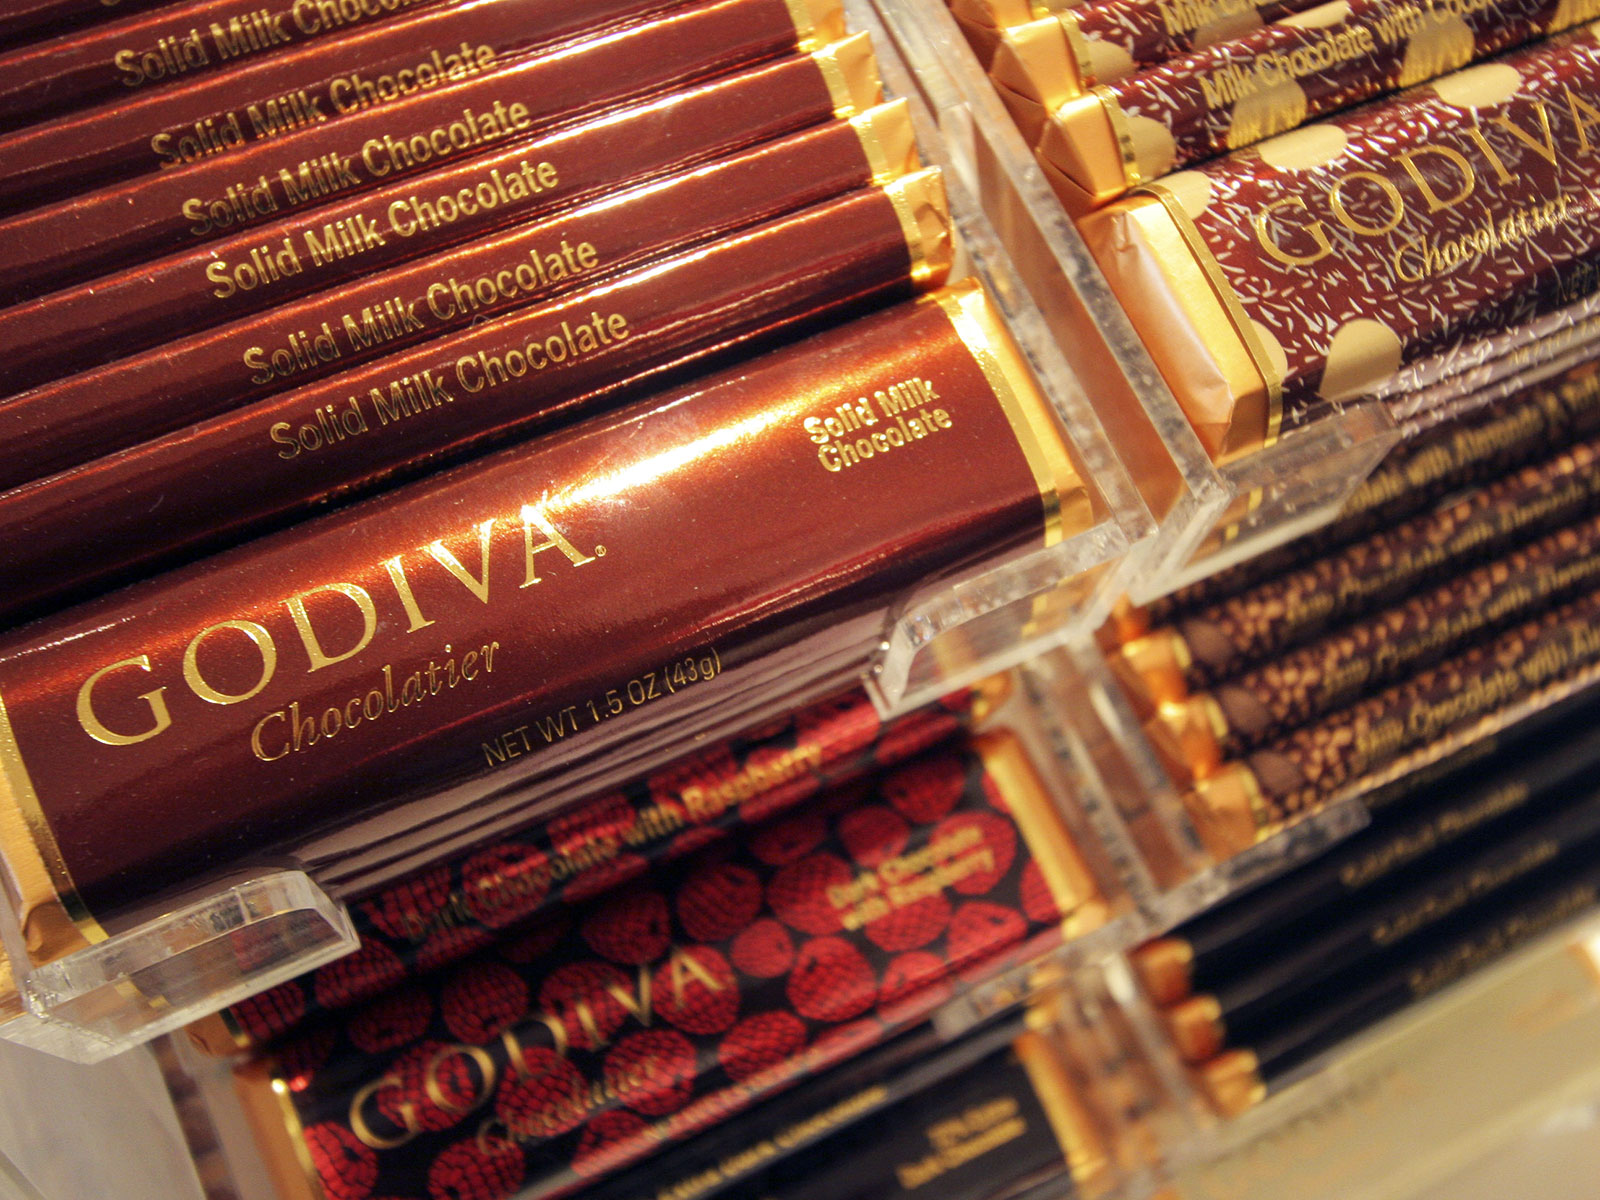 godiva goes mainstream chocolate bar